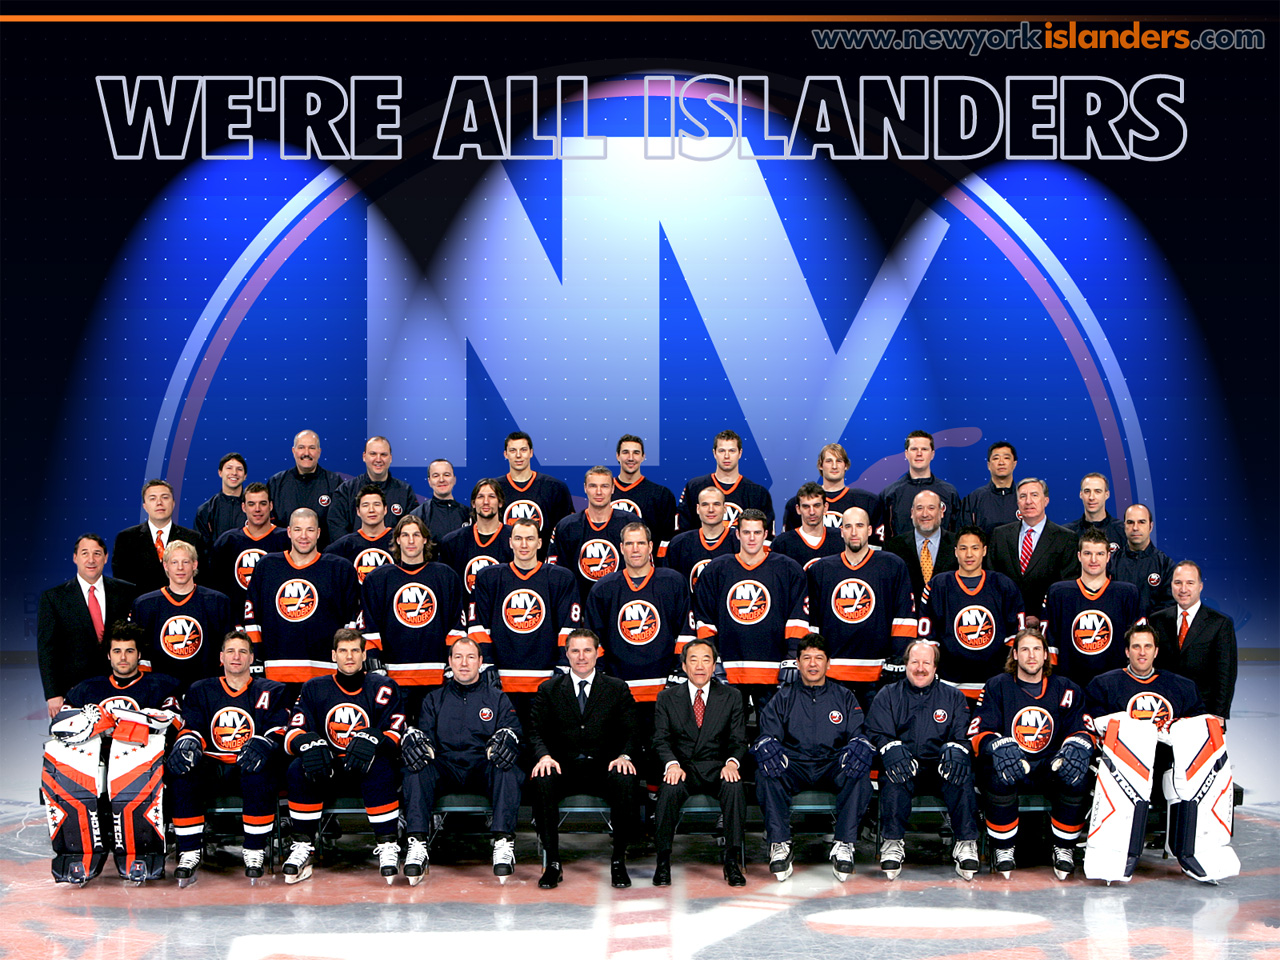 Download New York Islanders wallpaper New York Islanders Team 1280x960